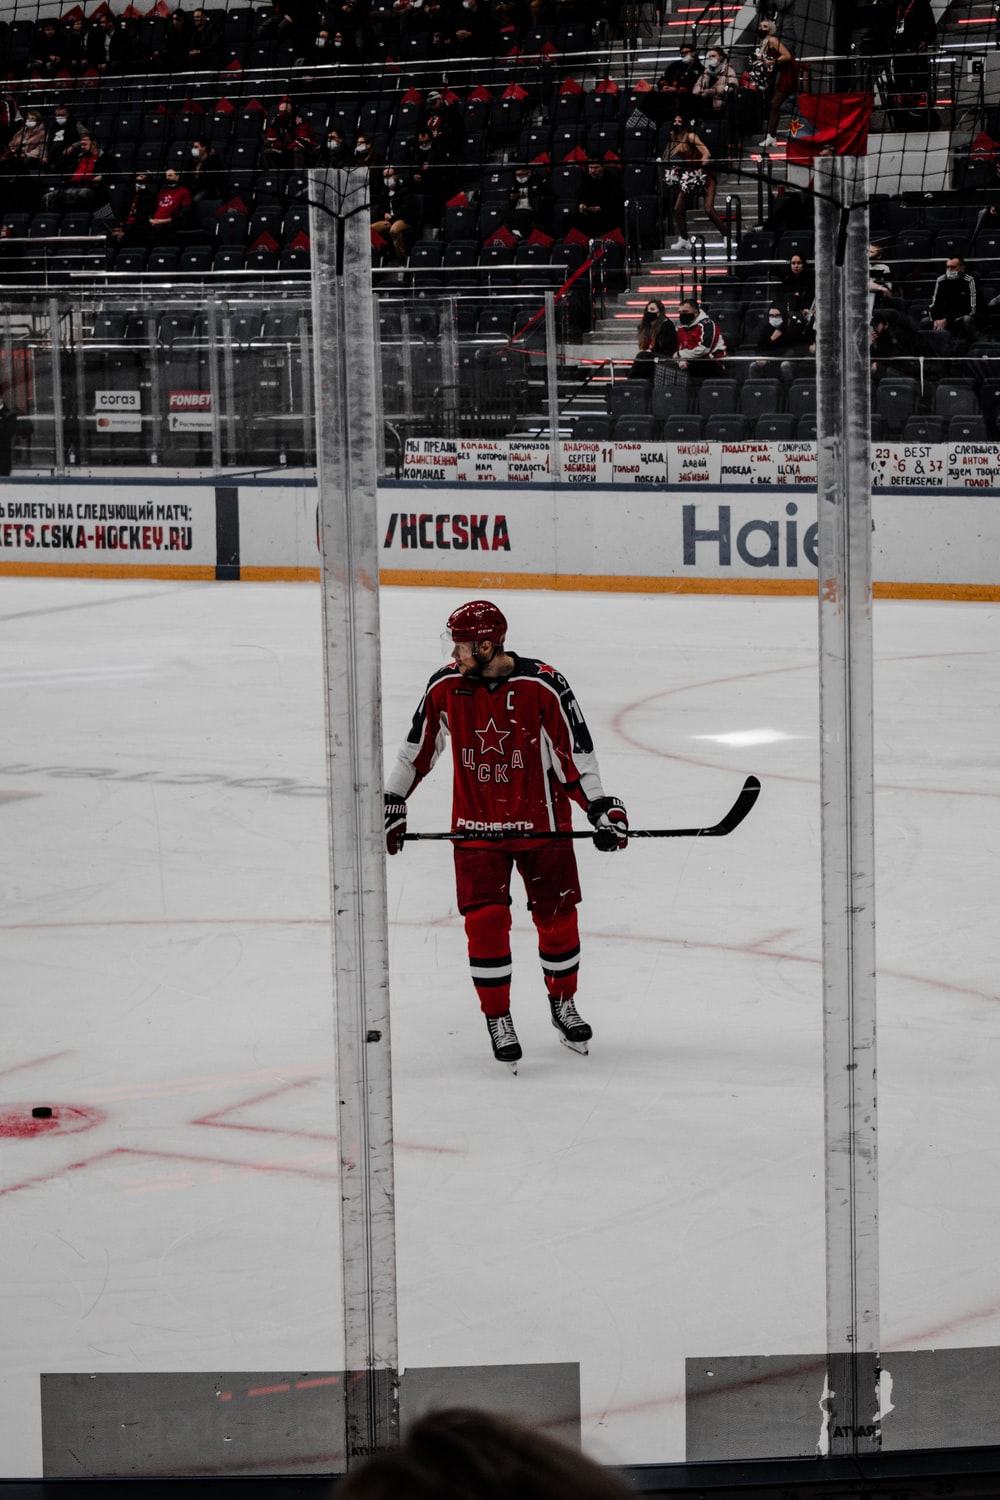 man in red ice hockey jersey playing ice hockey